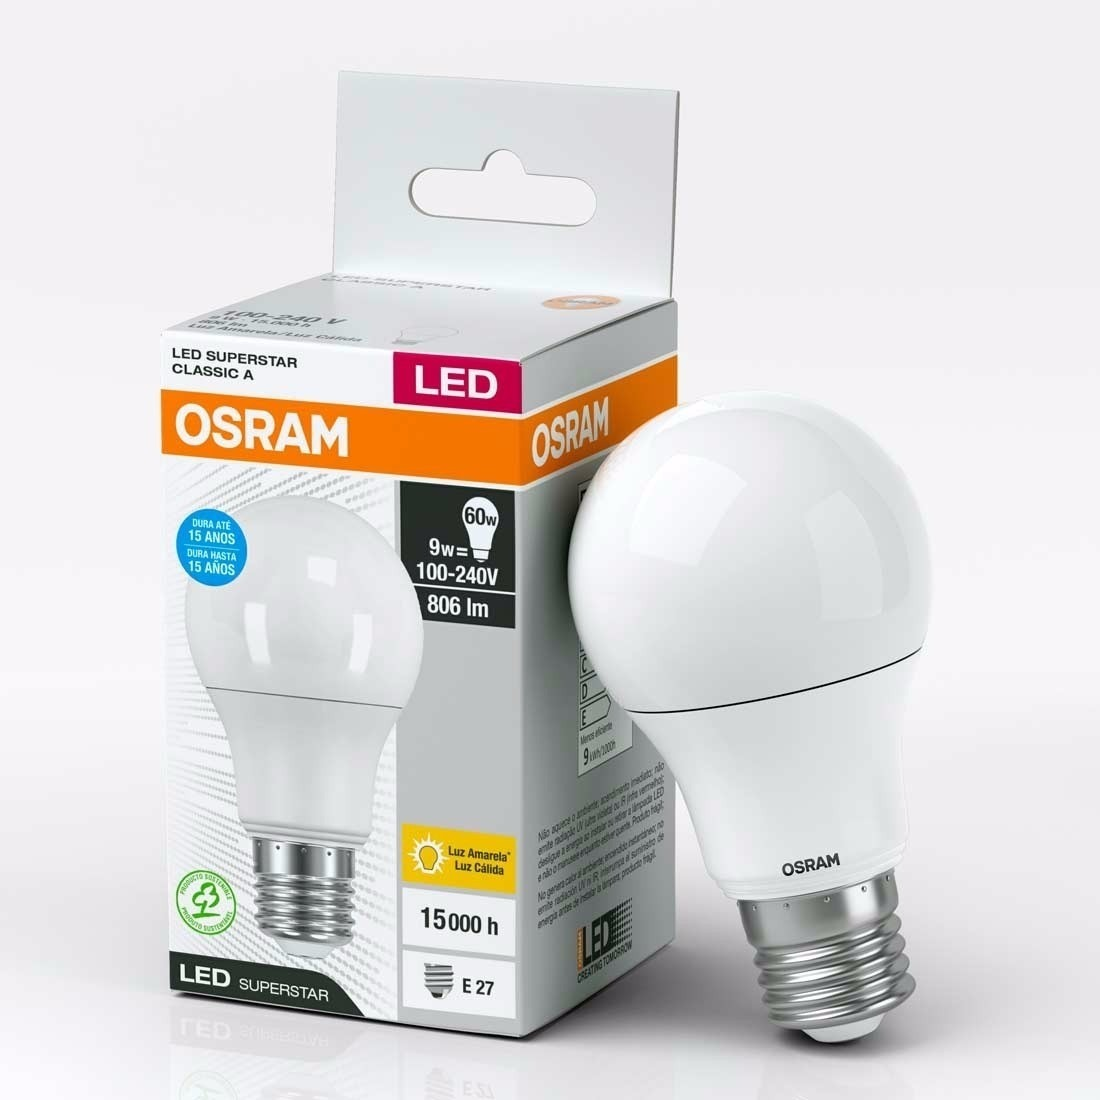 5 Superstar Classic Osram Calidadia Lampara Led Pack 9w A EHDeY9IW2